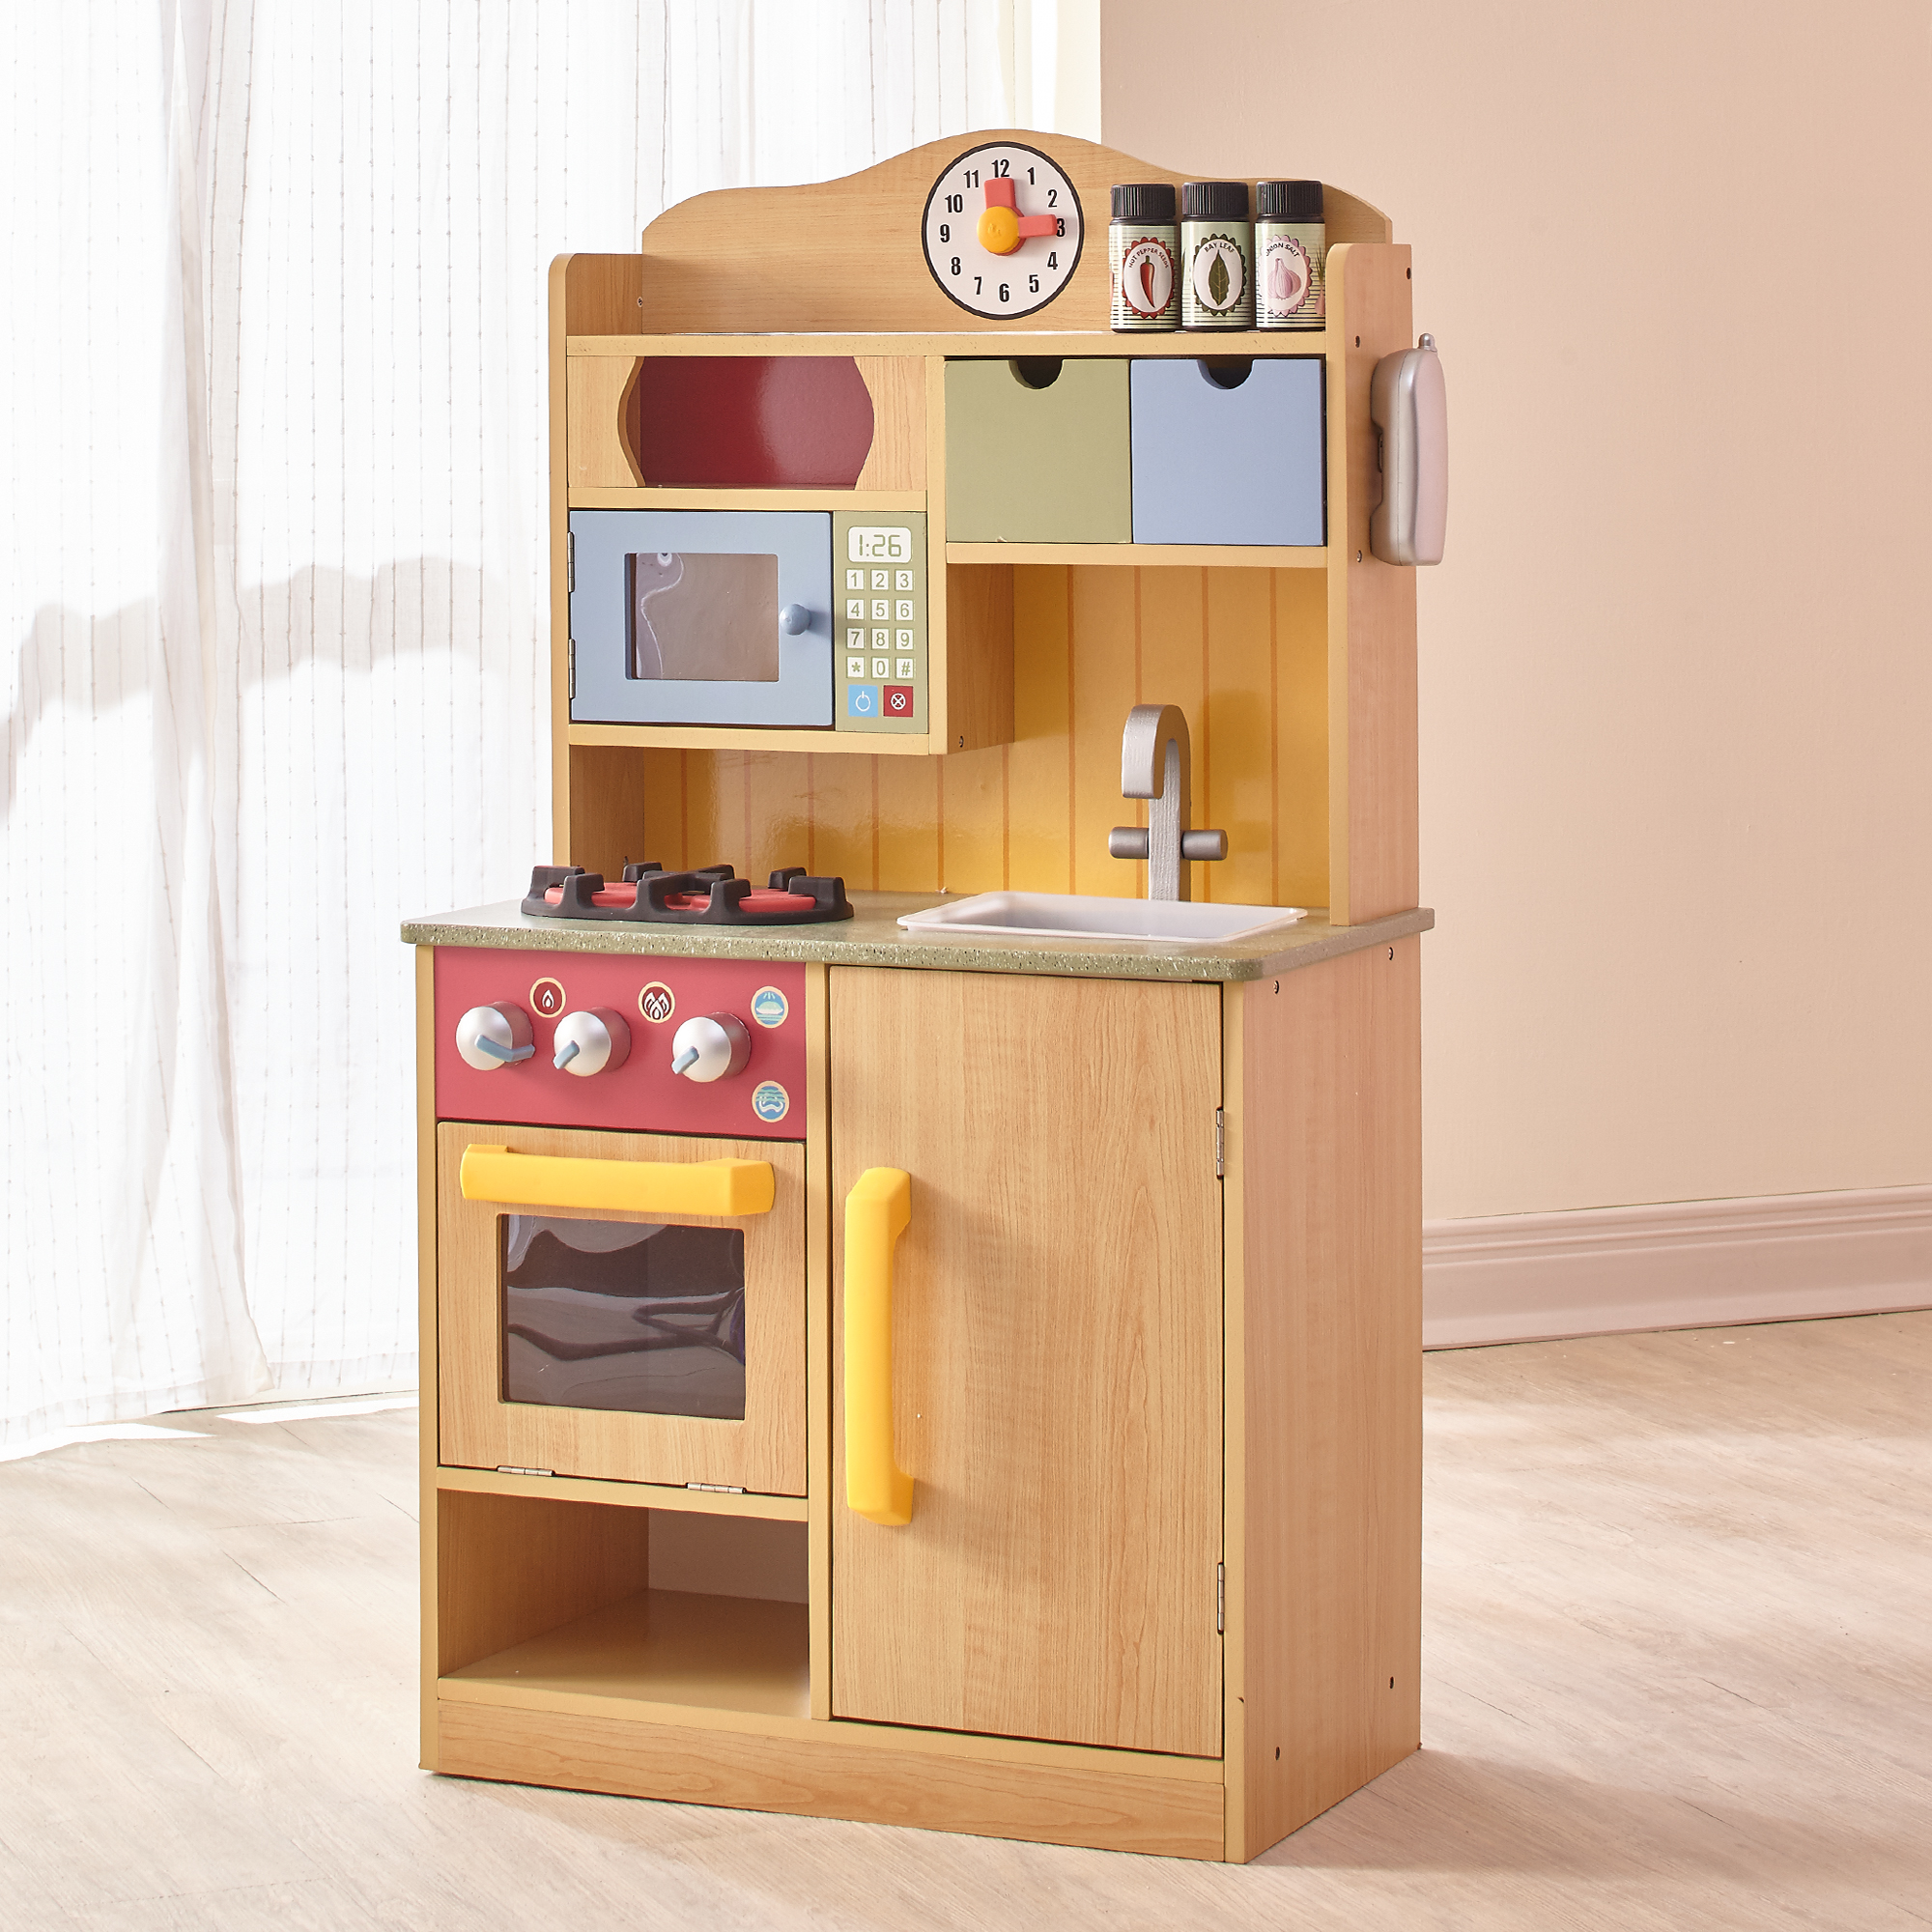 Teamson Kids - Little Chef Florence Classic Play Kitchen - Wood Grain